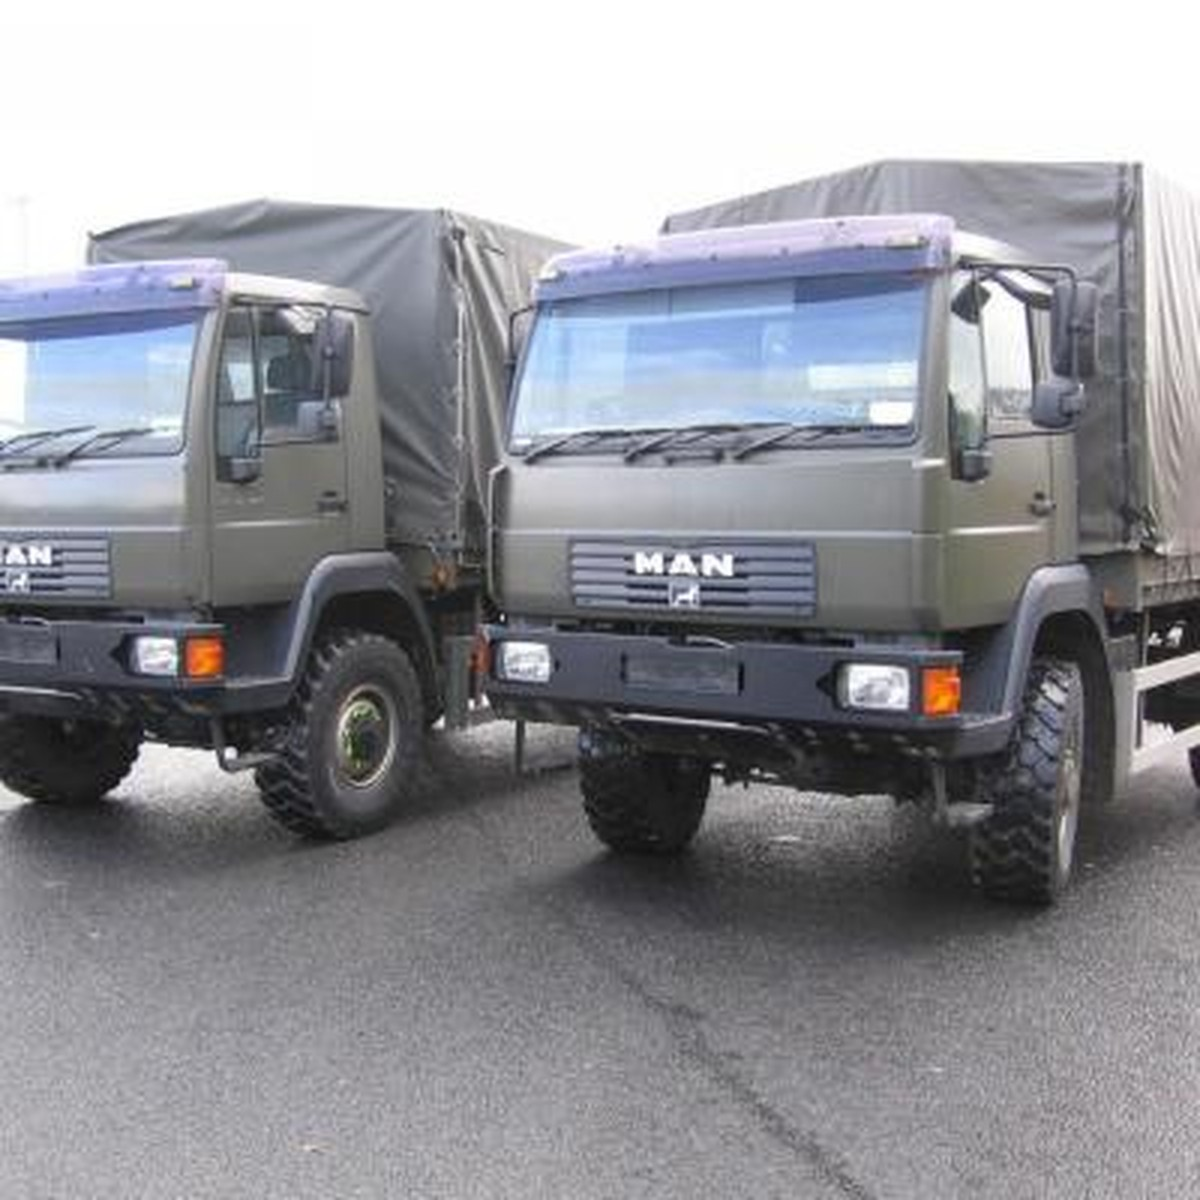 Catering Vans For Sale >> Secondhand Lorries and Vans | 4 x 4 and Off Road | MAN 4x4 10.185 Ideal Expedition Camper ...